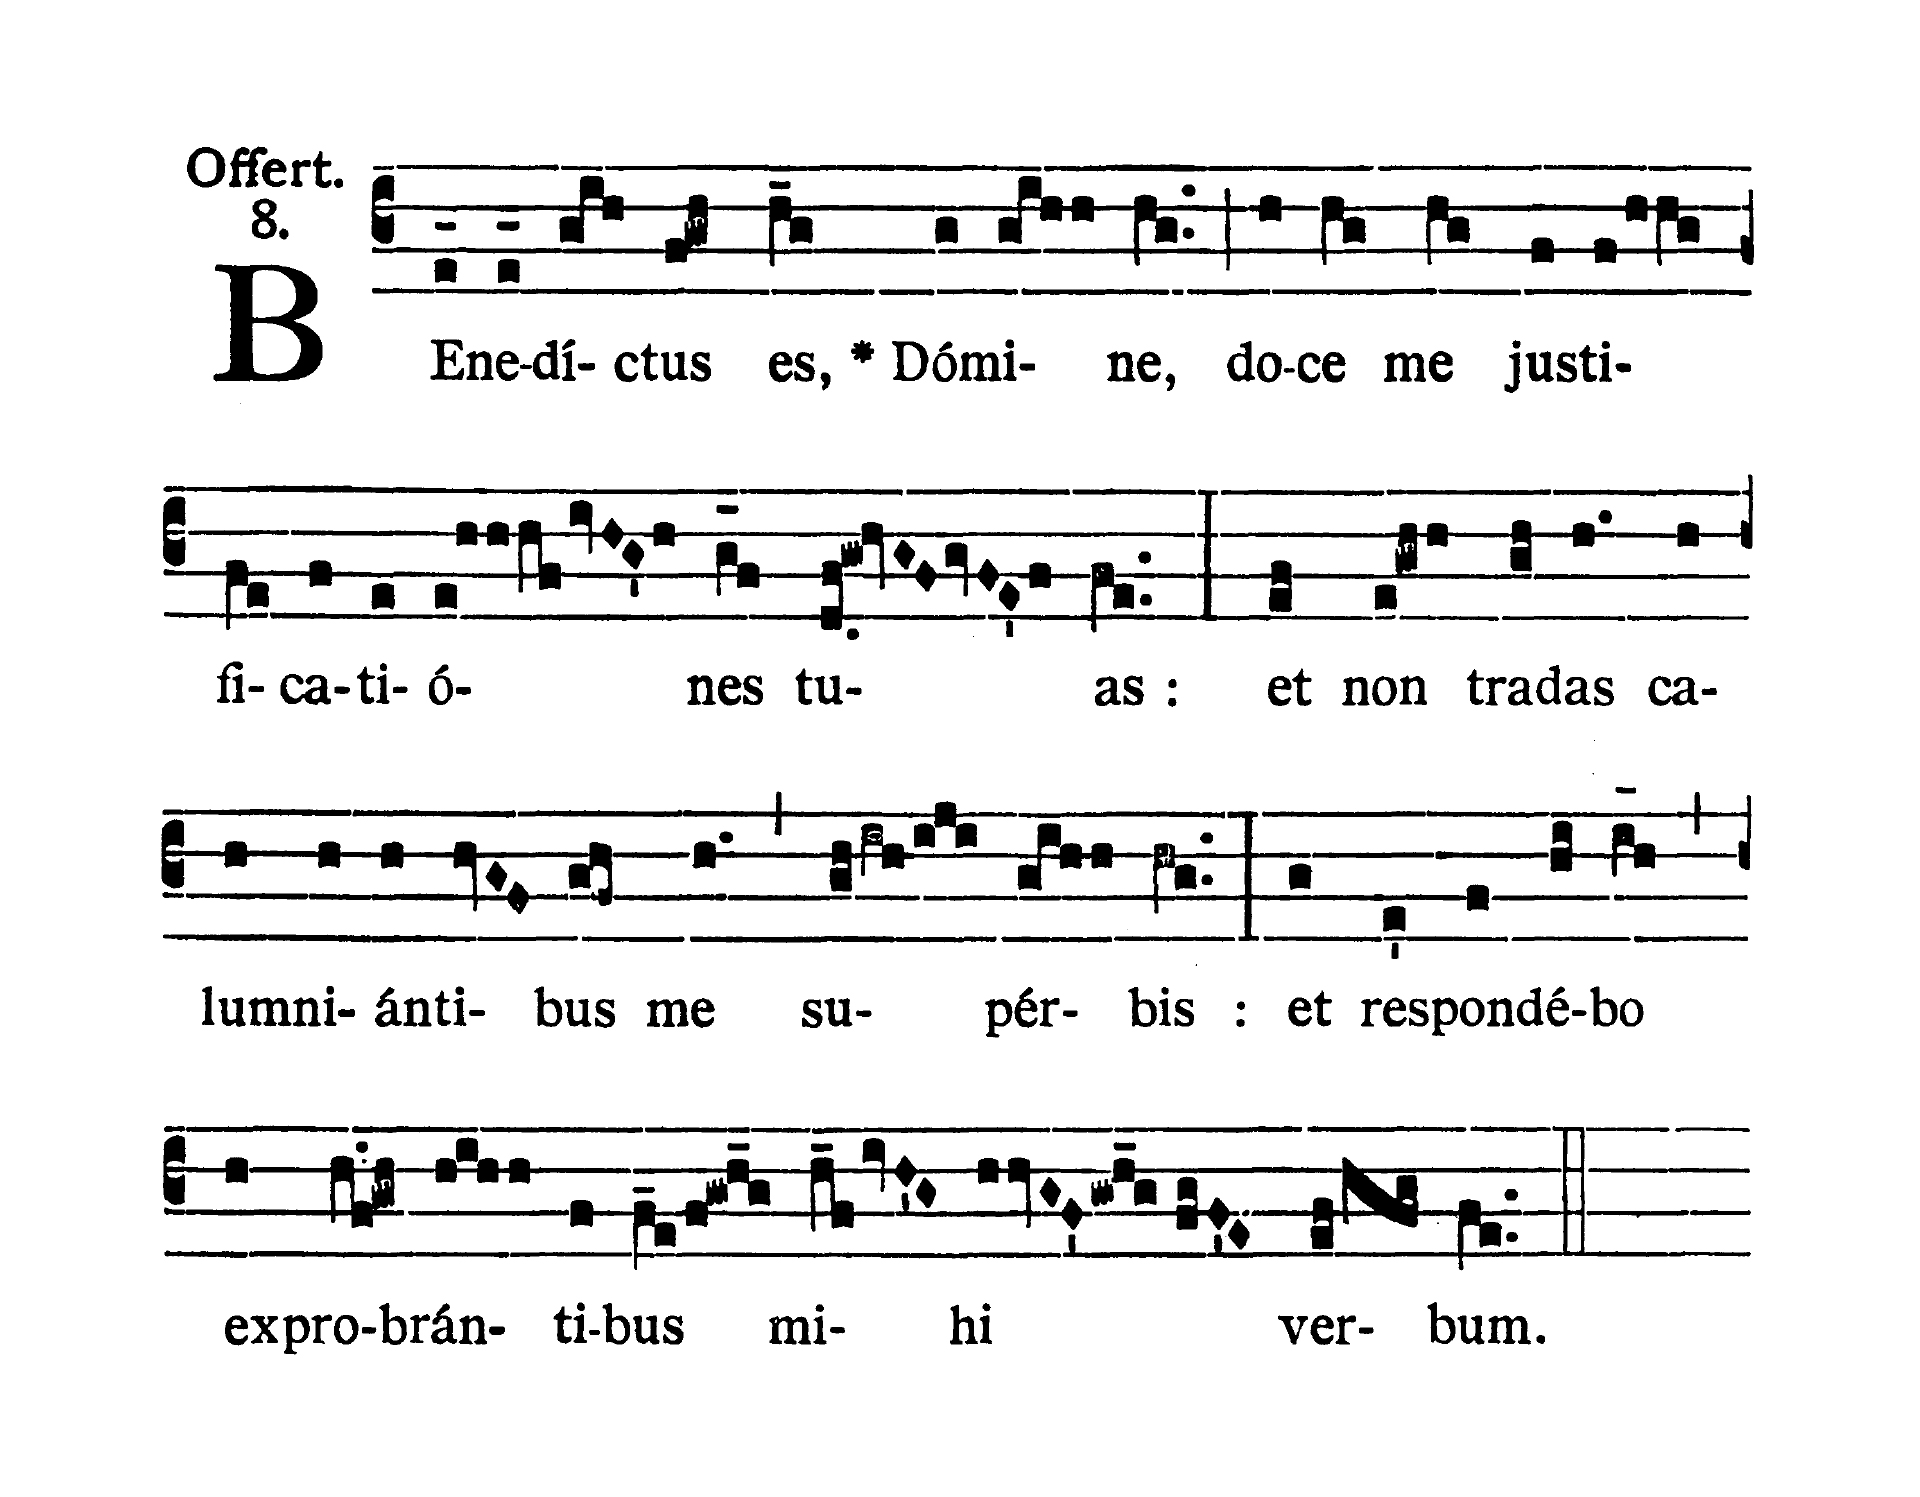 Sabbato post Dominicam I Passionis (Saturday after Passion Sunday) - Offertorium (Benedictus es)